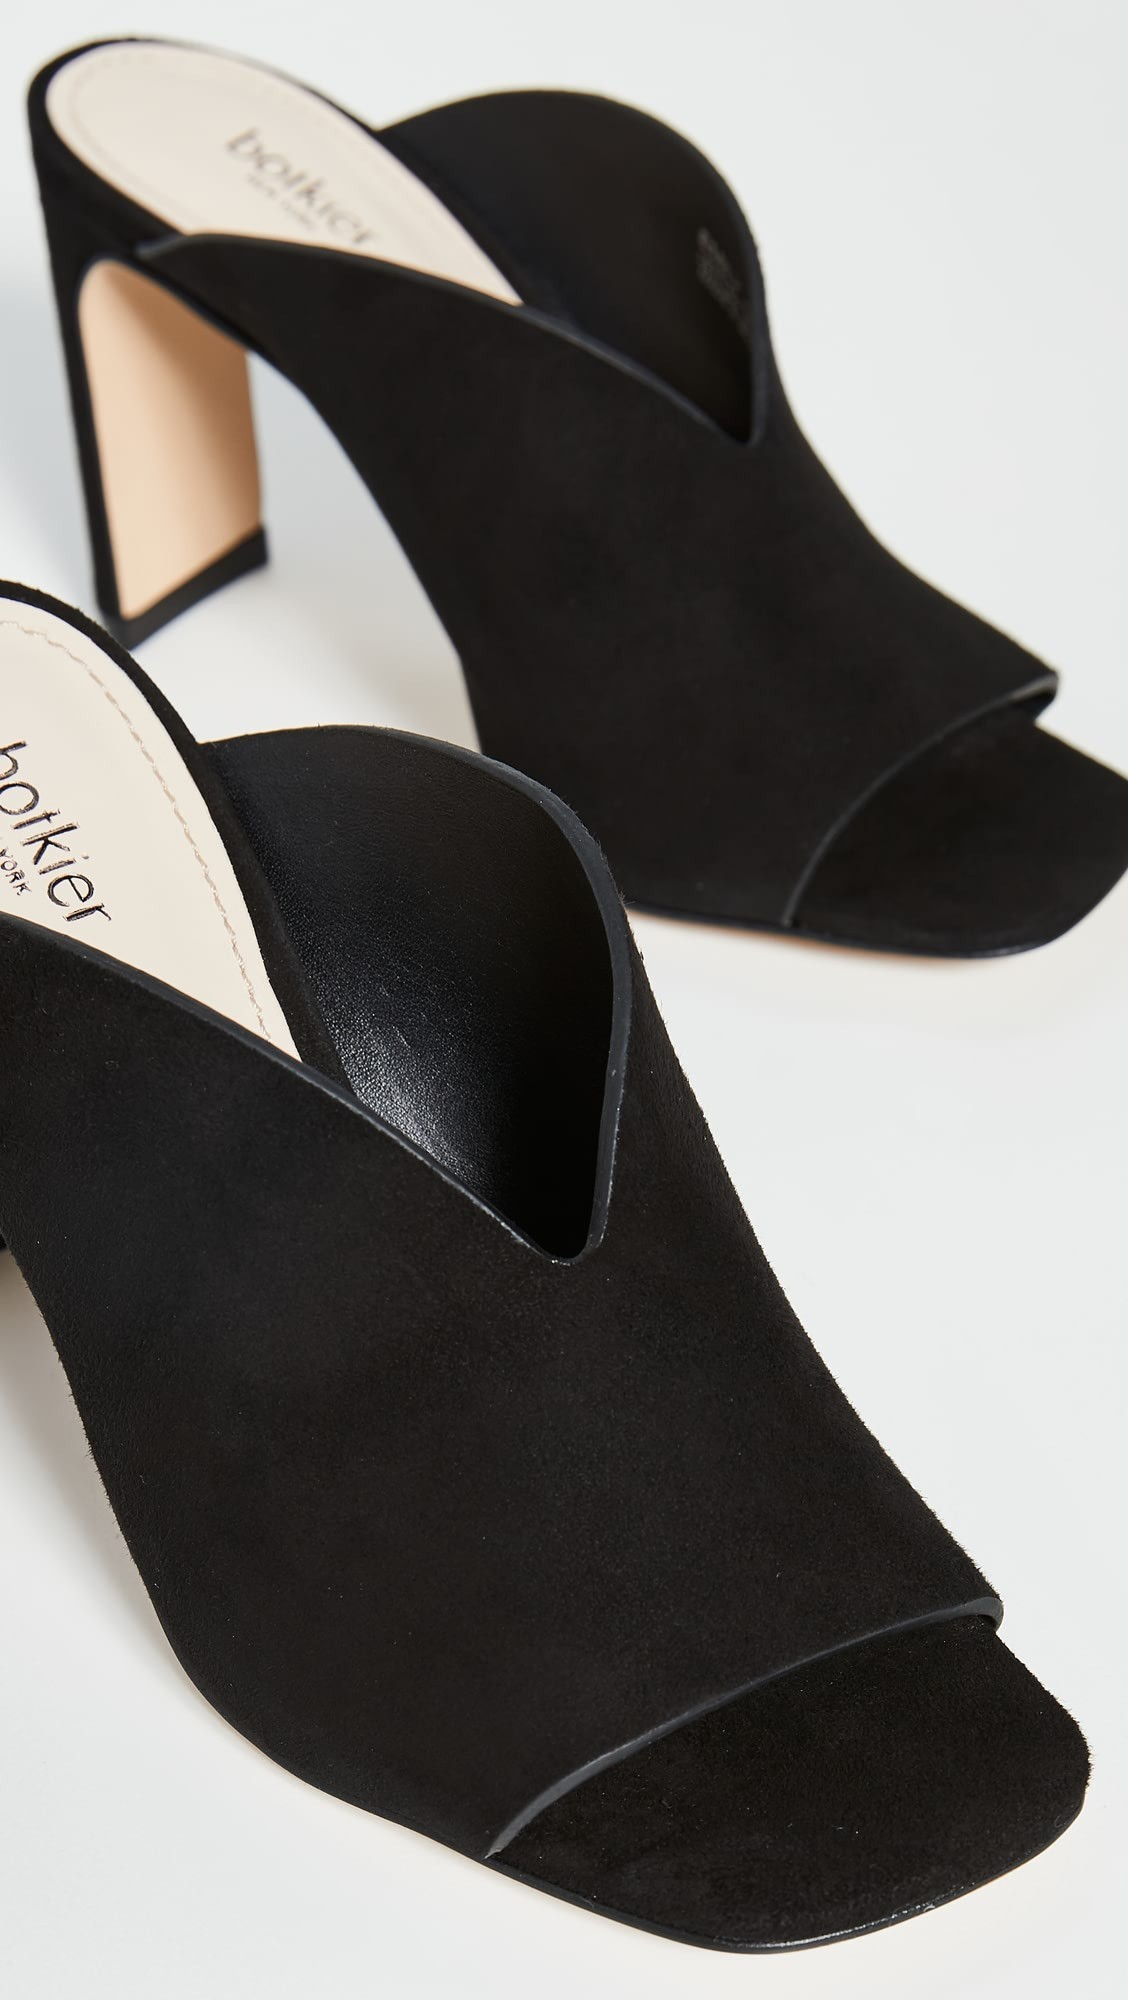 shop botkier shoes